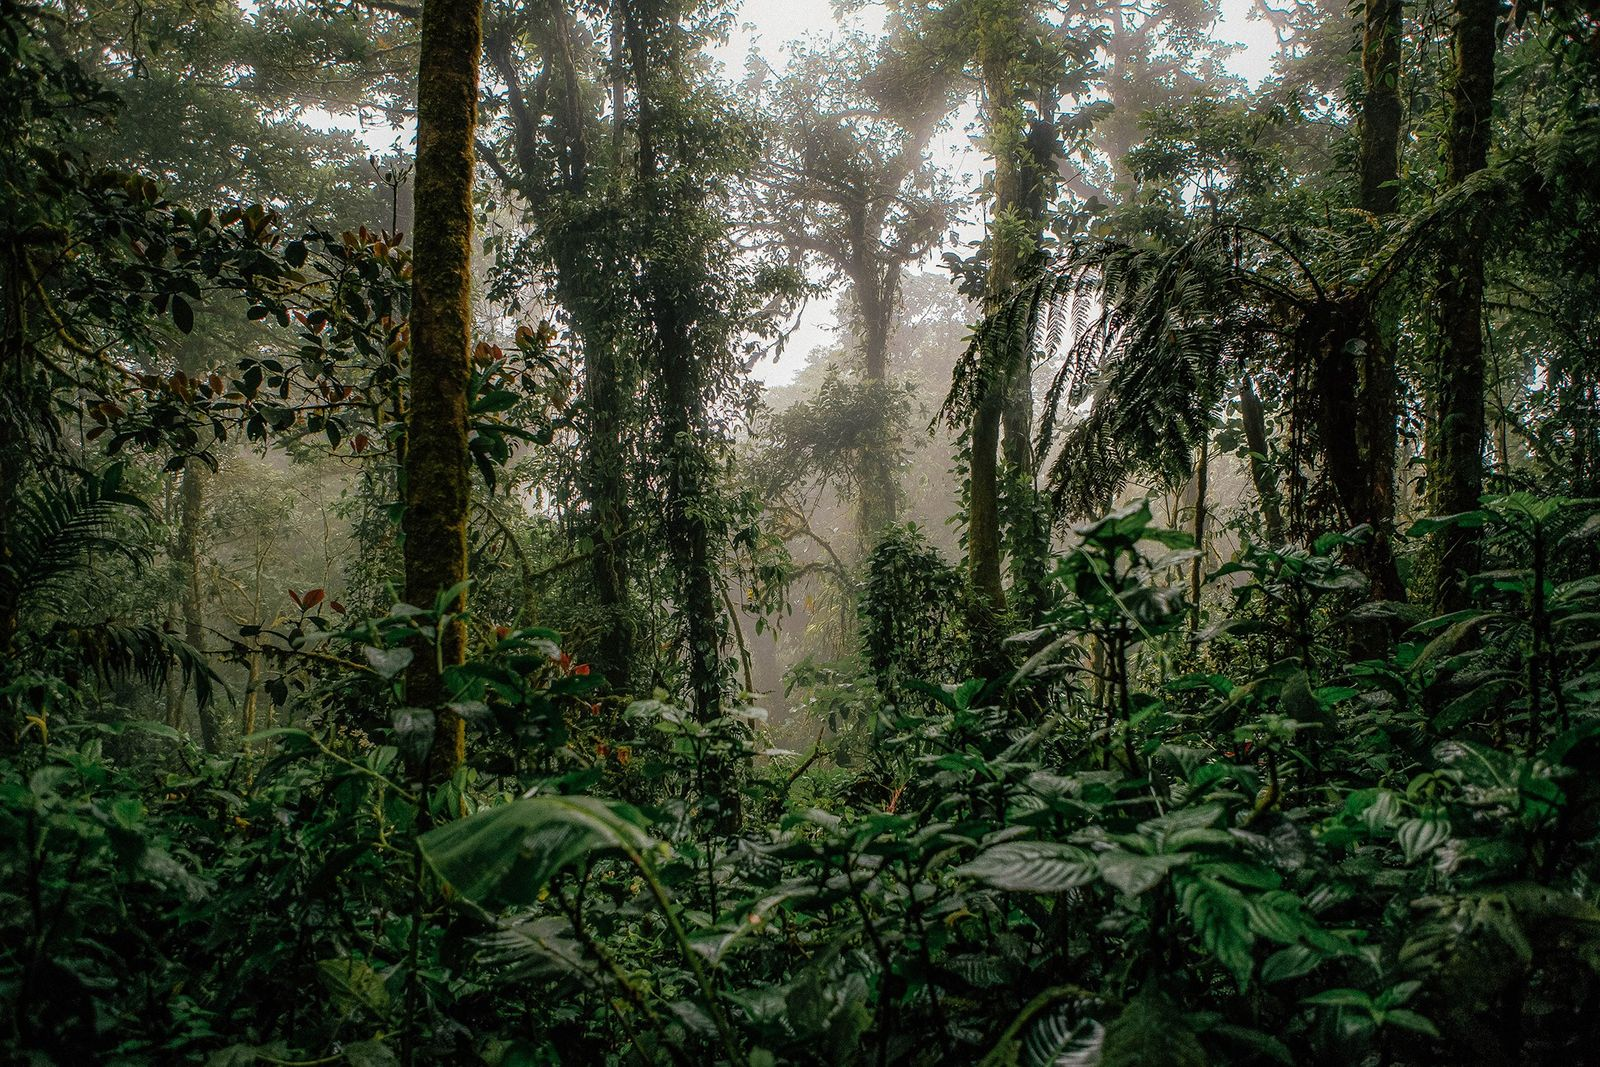 The rainforests of Monteverde, in Costa Rica, attract thousands of nature lovers hoping to glimpse species ...